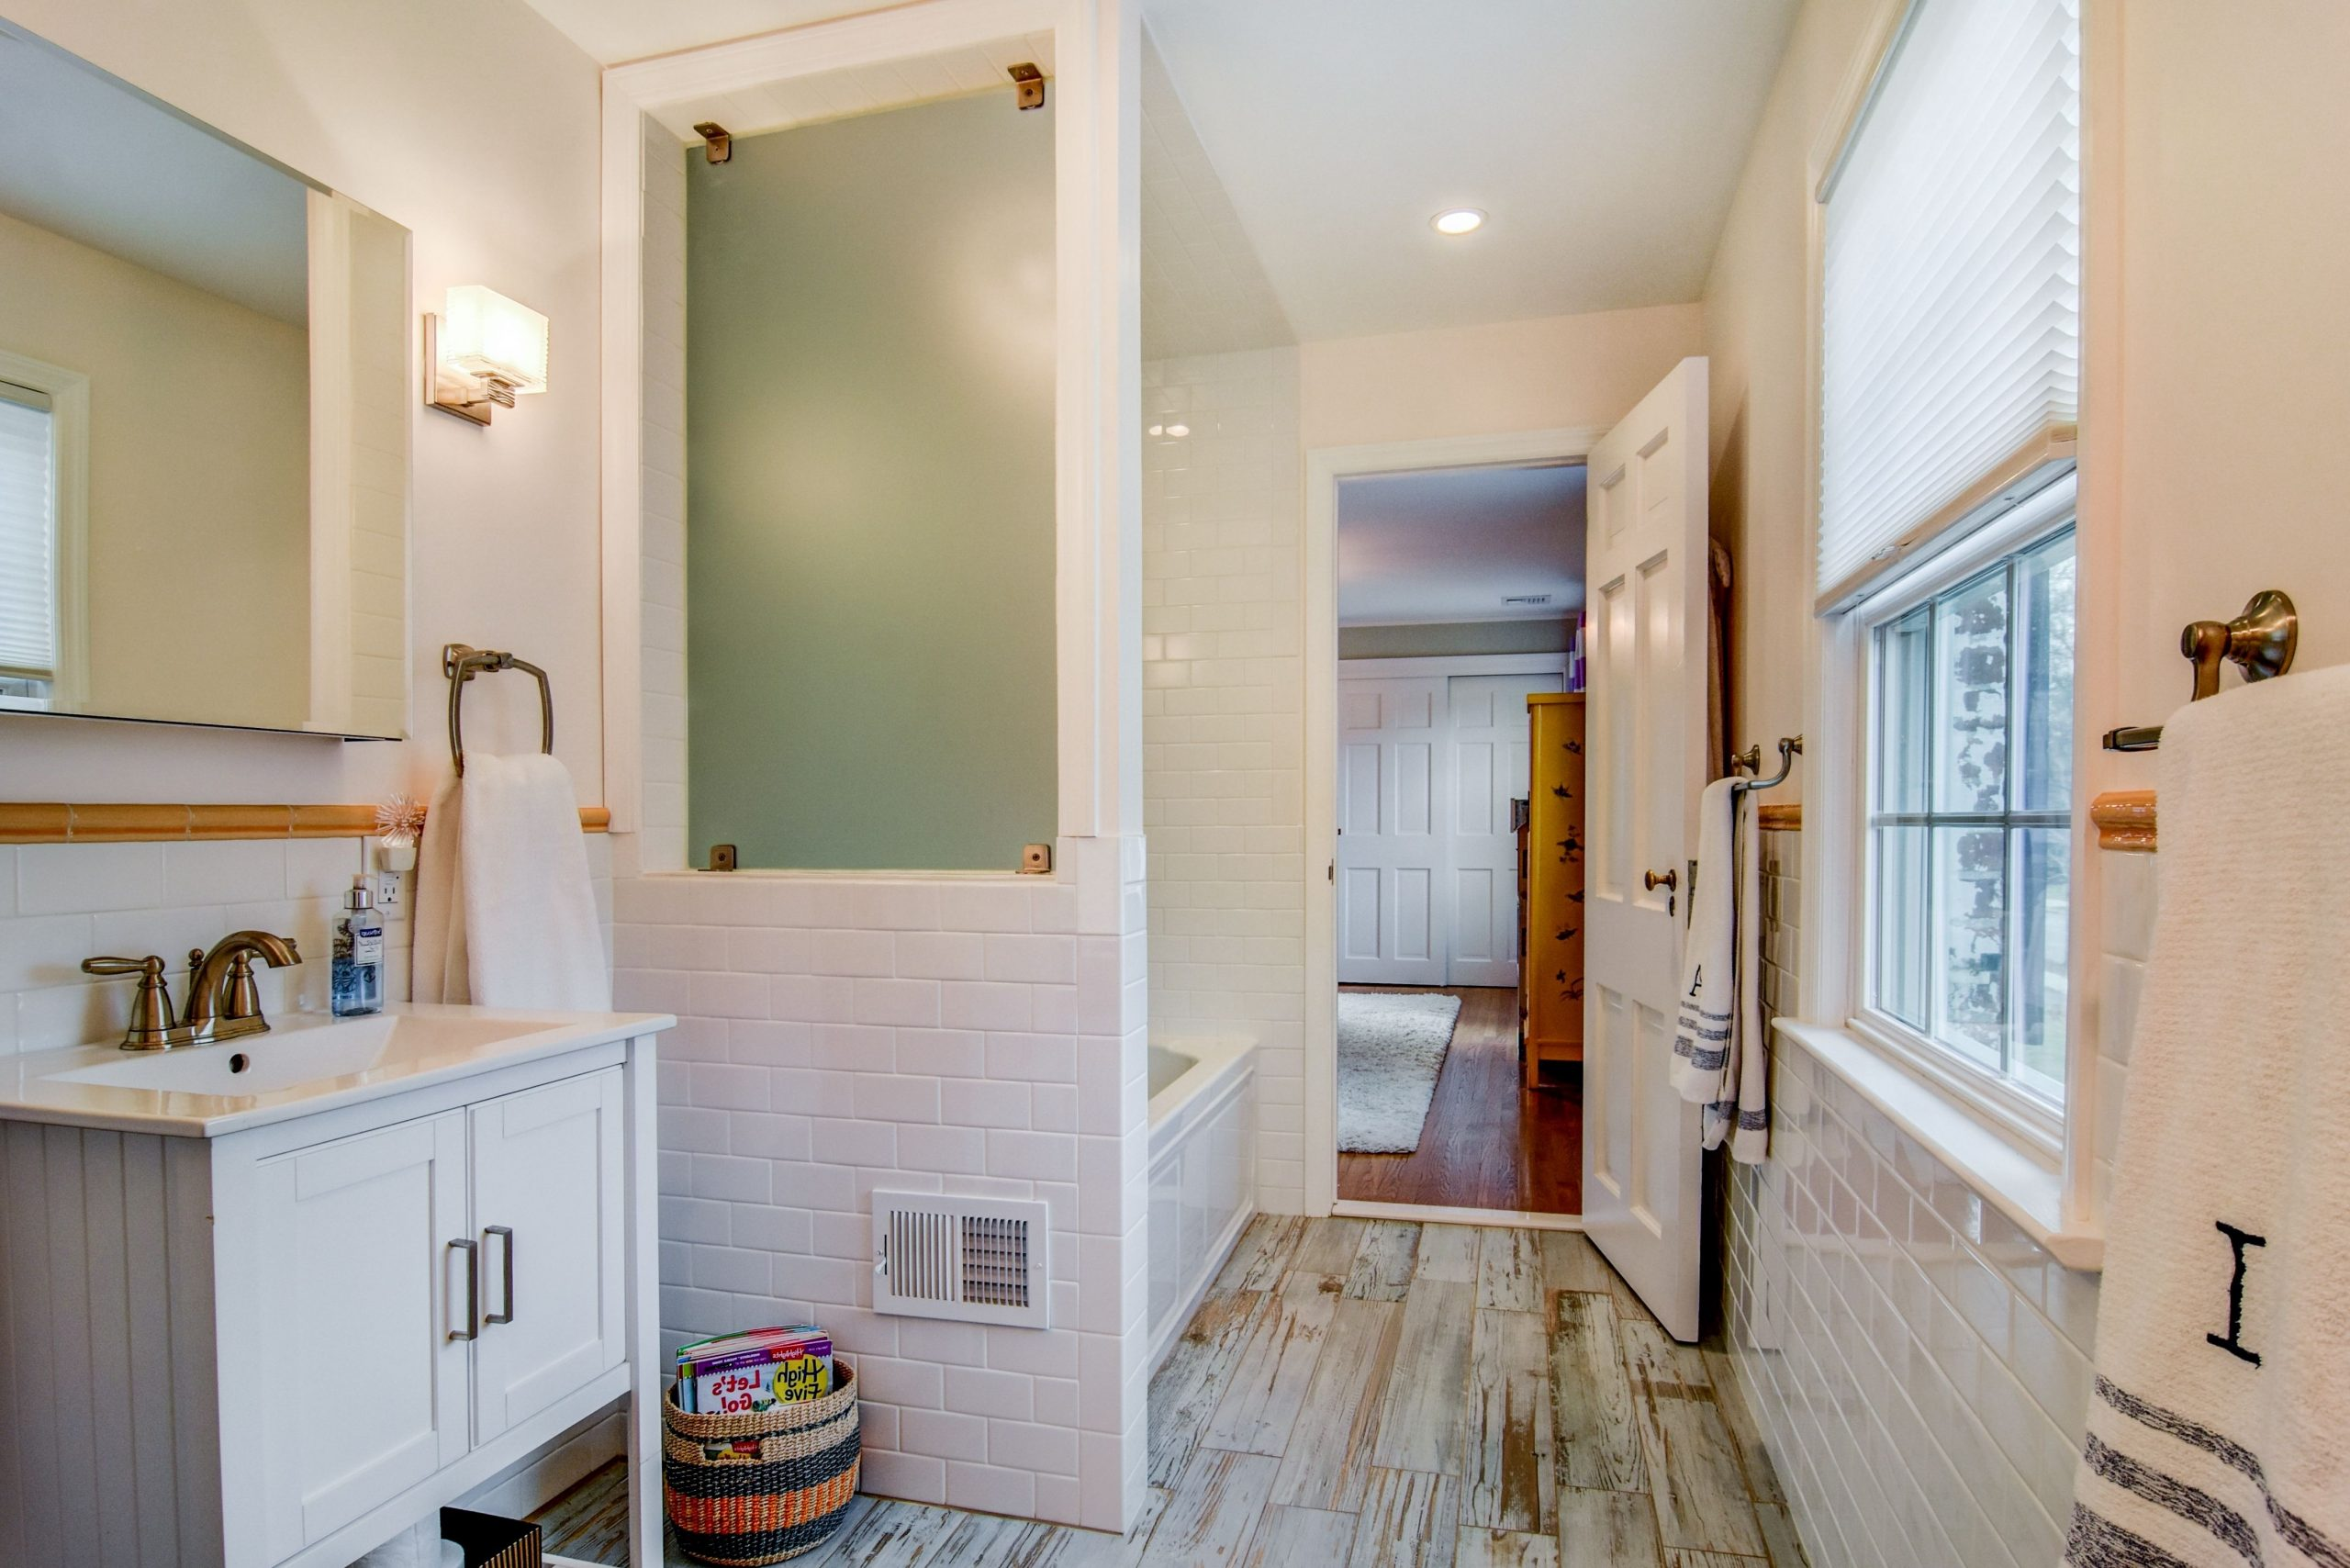 Cute Jack And Jill Bathroom Perfect For Children To Share Cute Jack And Jill Bathroom